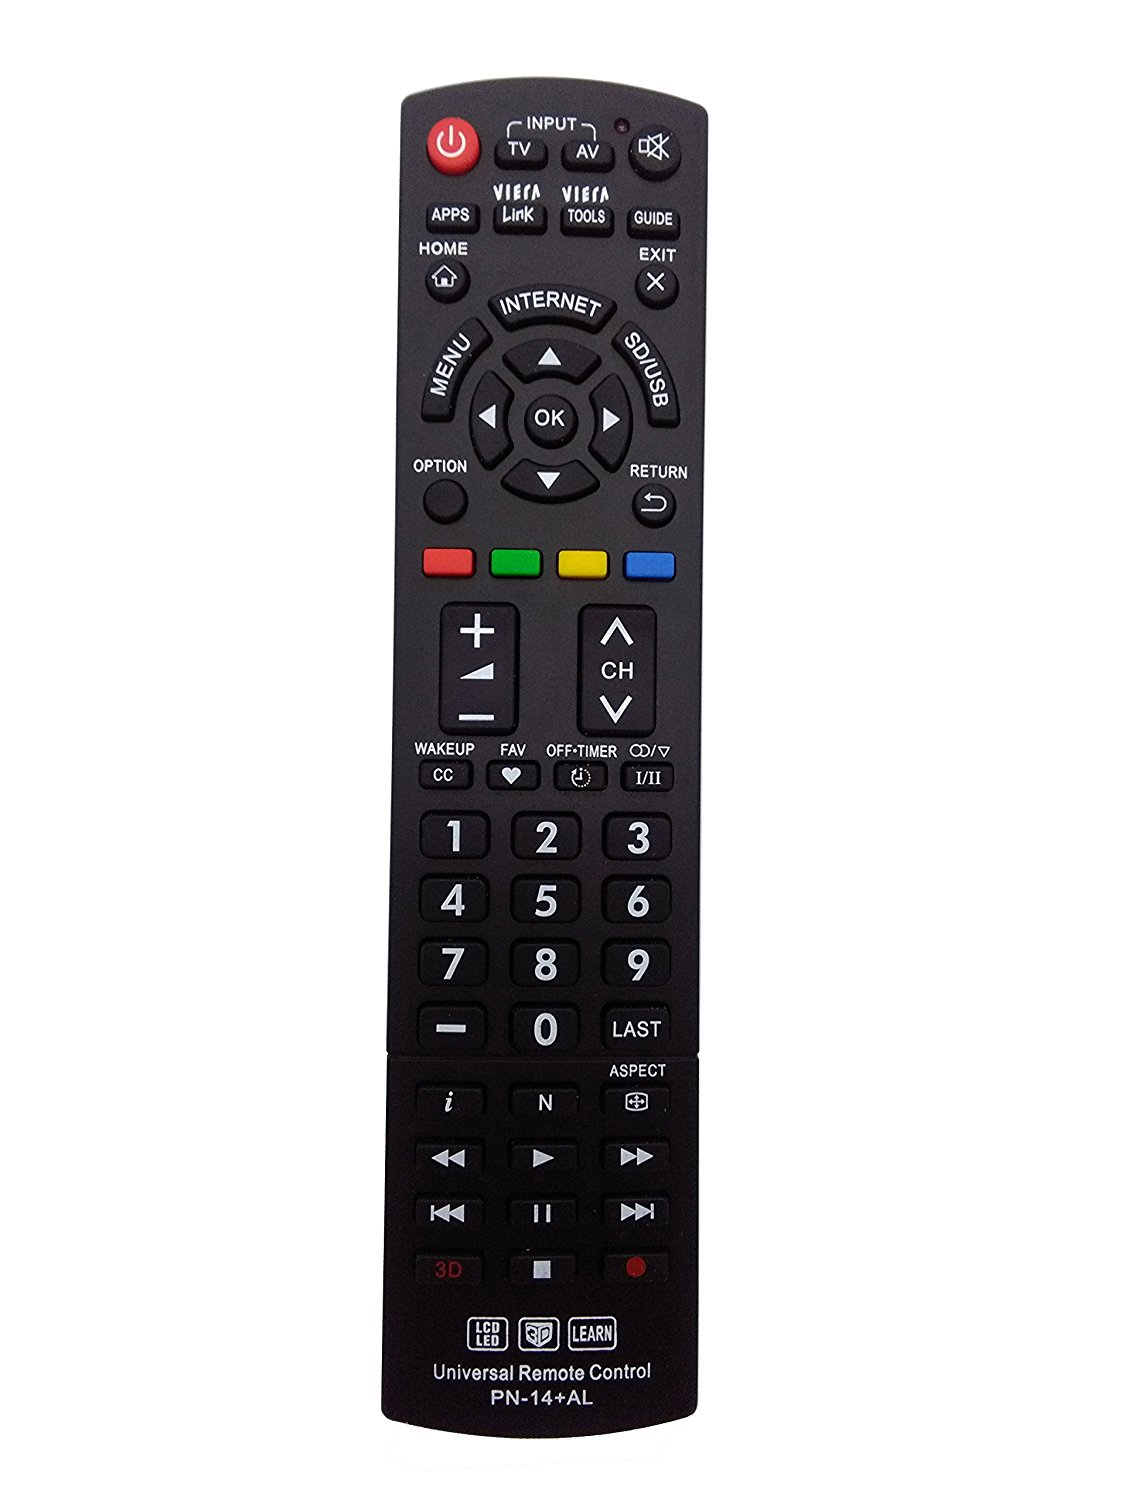 New VINABTY Replaced Remote fit for PANASONIC N2QAYB000486 N2QAYB000321 N2QAYB000485 N2QAYB000837 N2QAYB000926 N2QAYB000221 and other 3D LCD LED HDTV TV